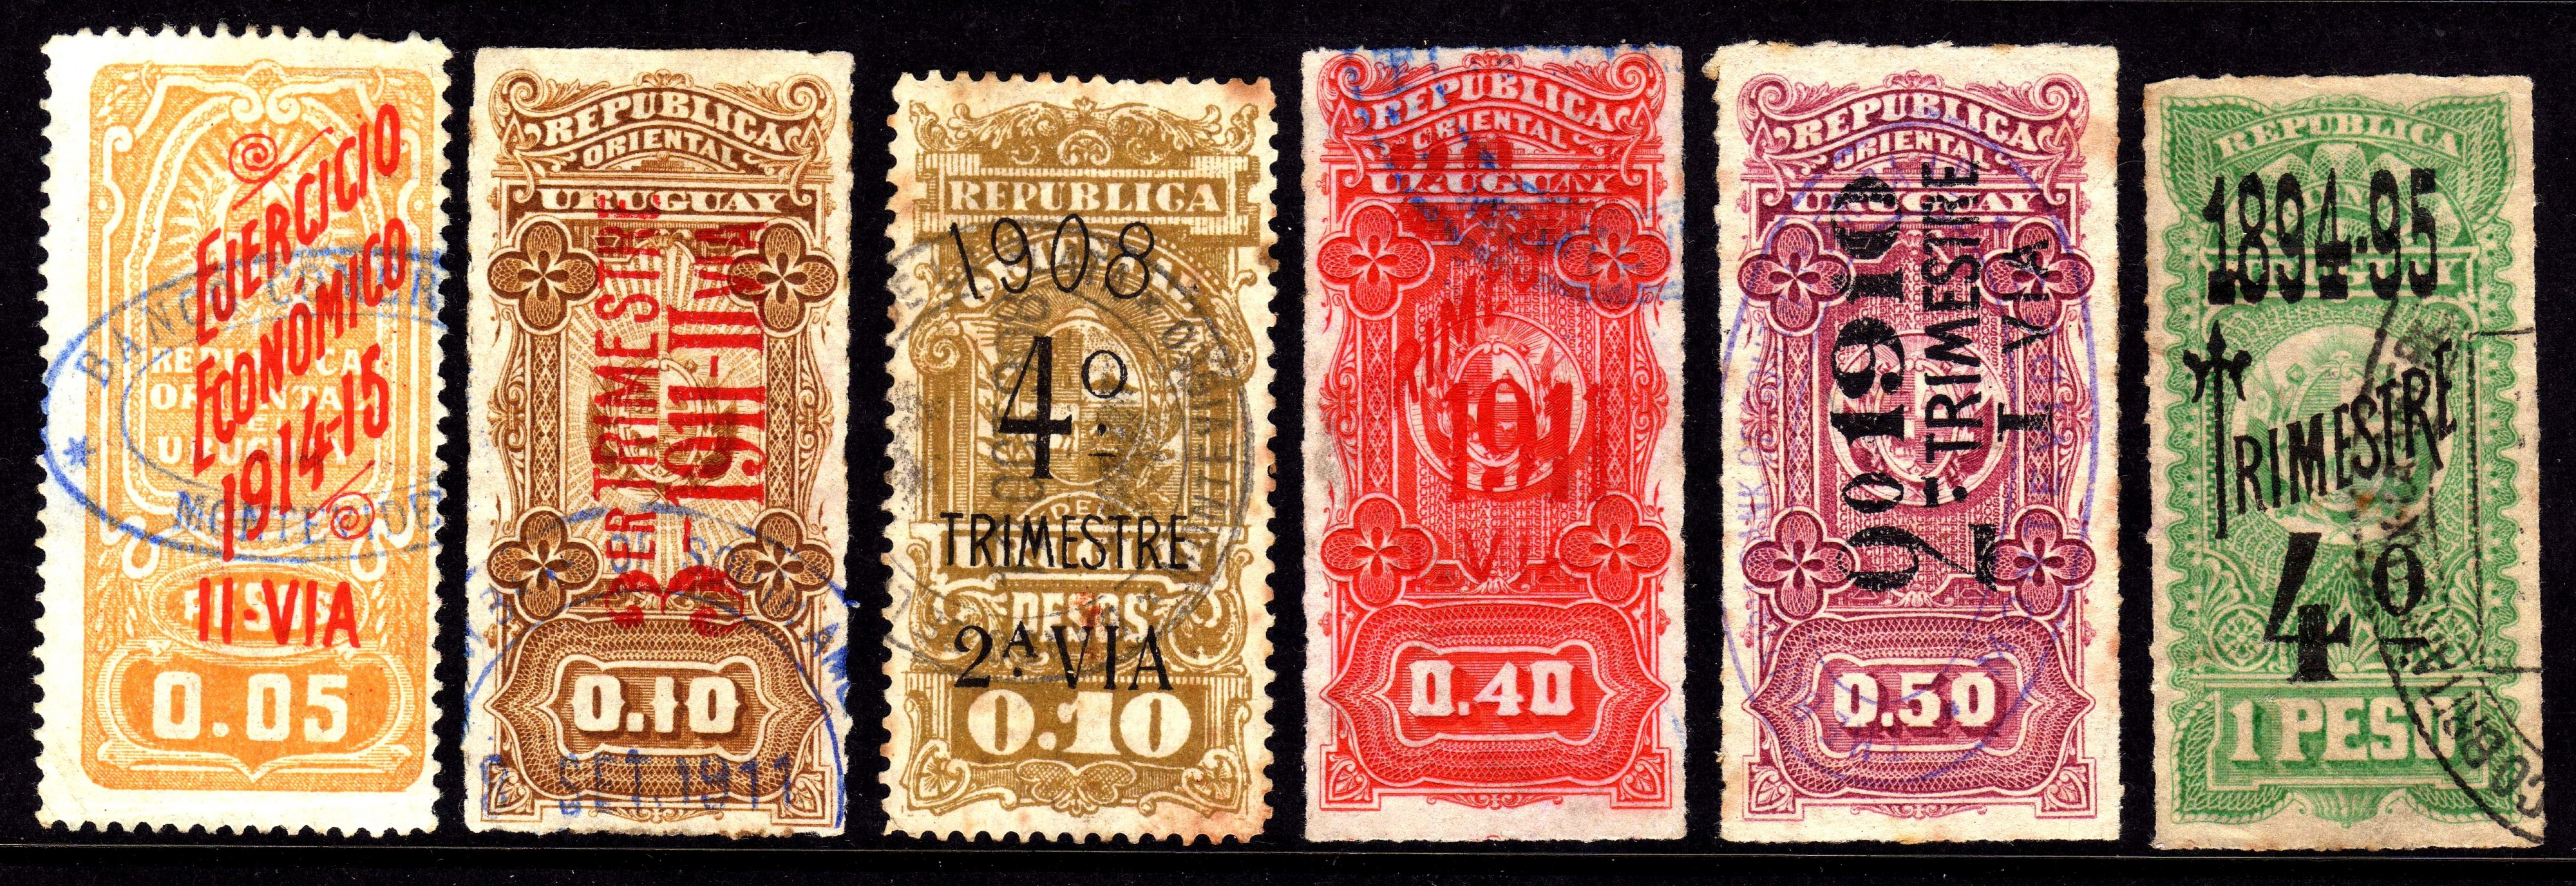 Revenue stamps of Uruguay